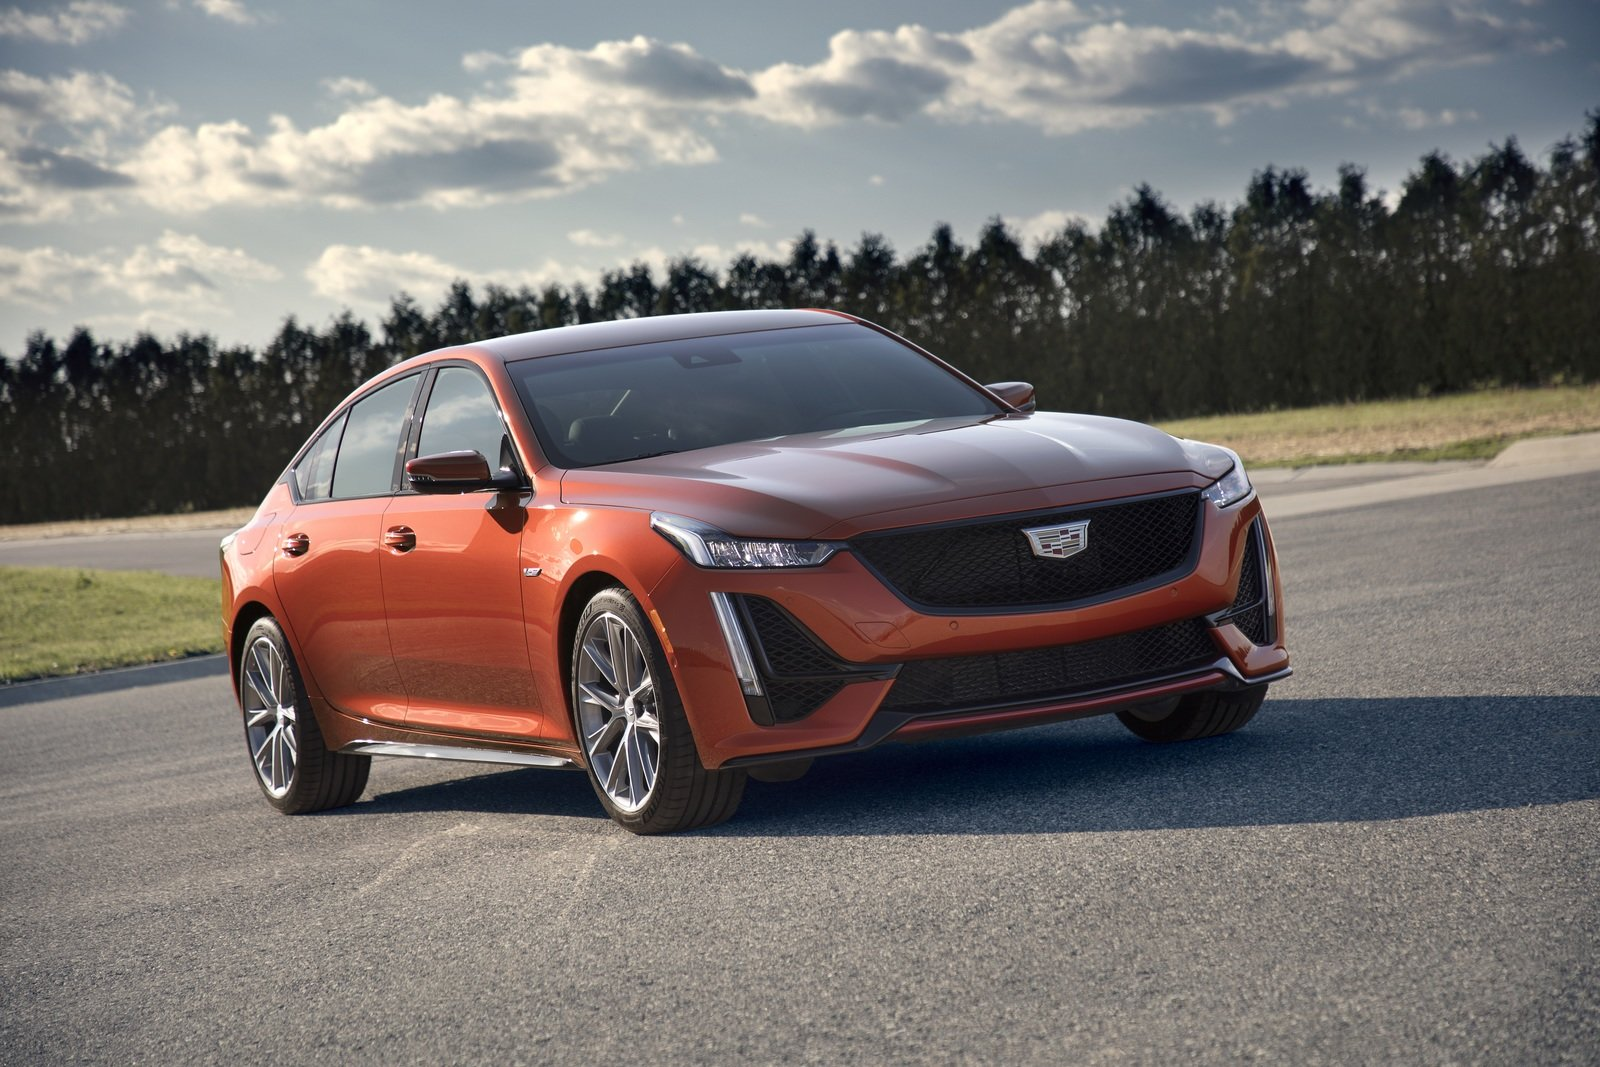 2020 cadillac ct5v pictures photos wallpapers and video